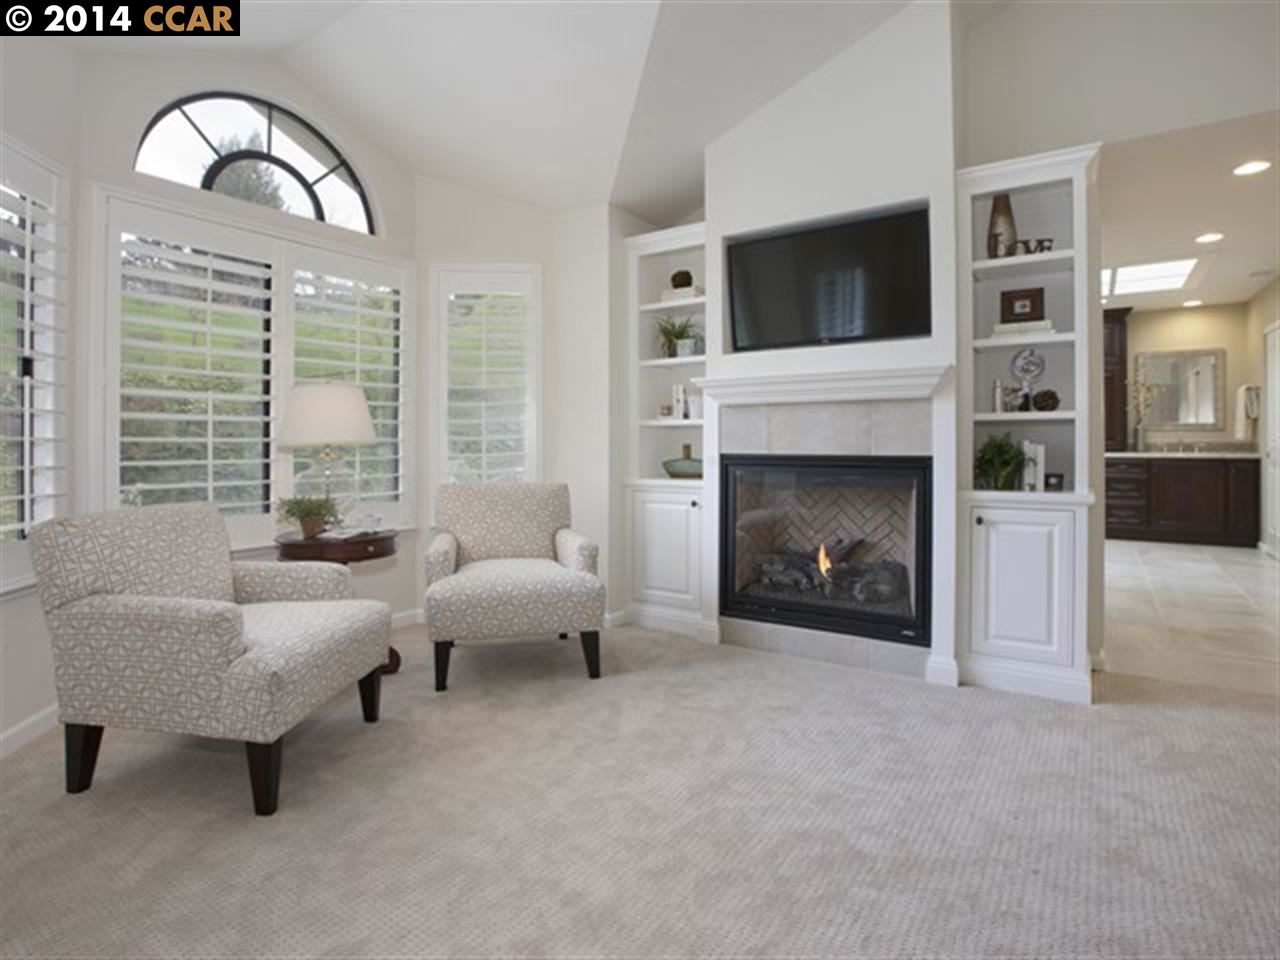 Additional photo for property listing at 30 Foothill Court  Danville, California 94506 United States